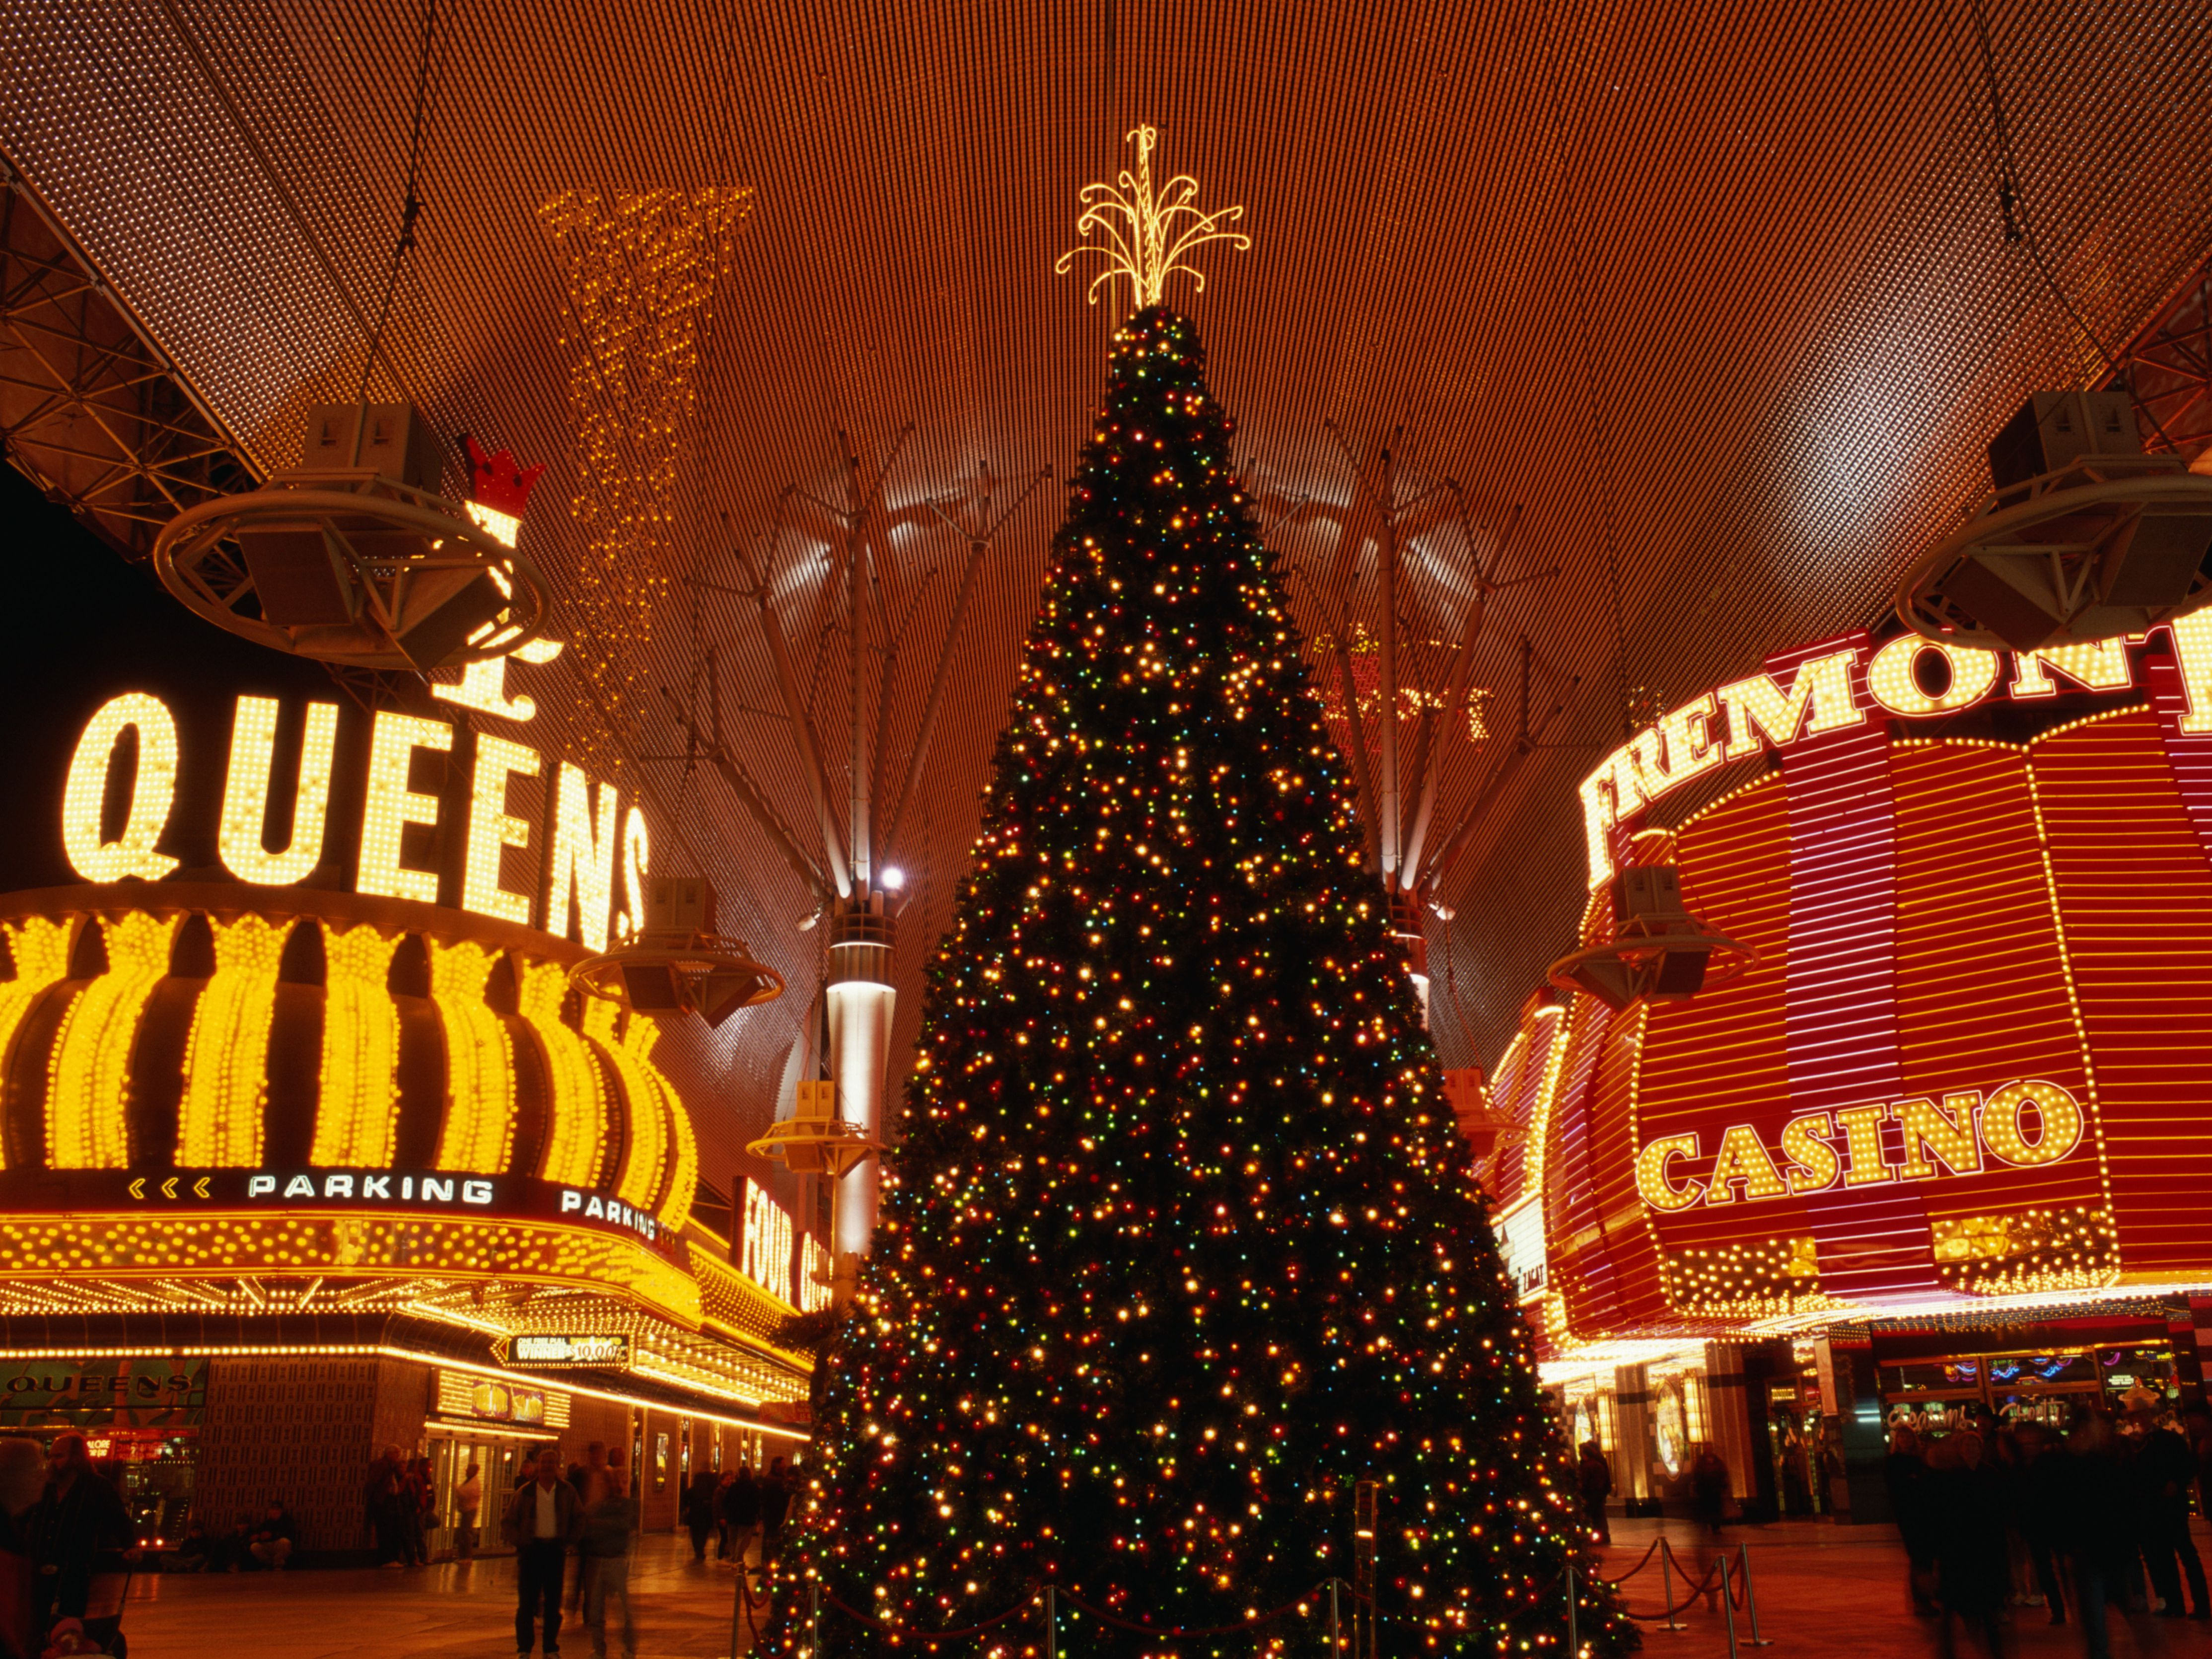 Las Vegas Christmas.December In Las Vegas Weather And Event Guide